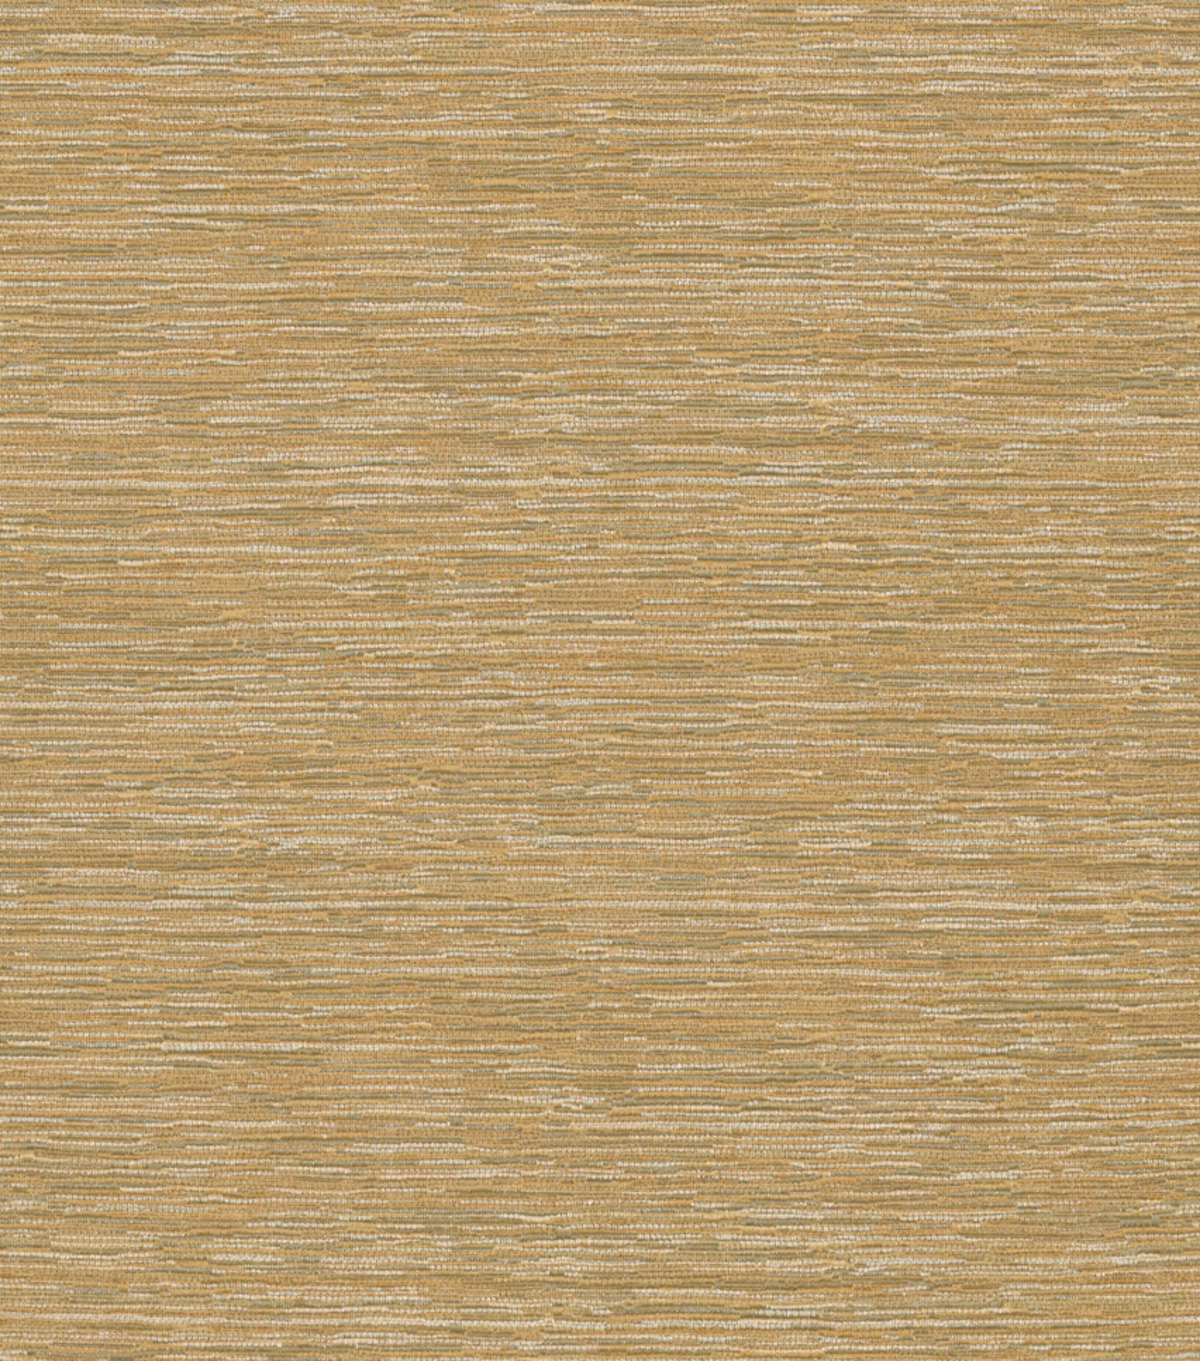 Home Decor 8\u0022x8\u0022 Fabric Swatch-Caledonia Honey